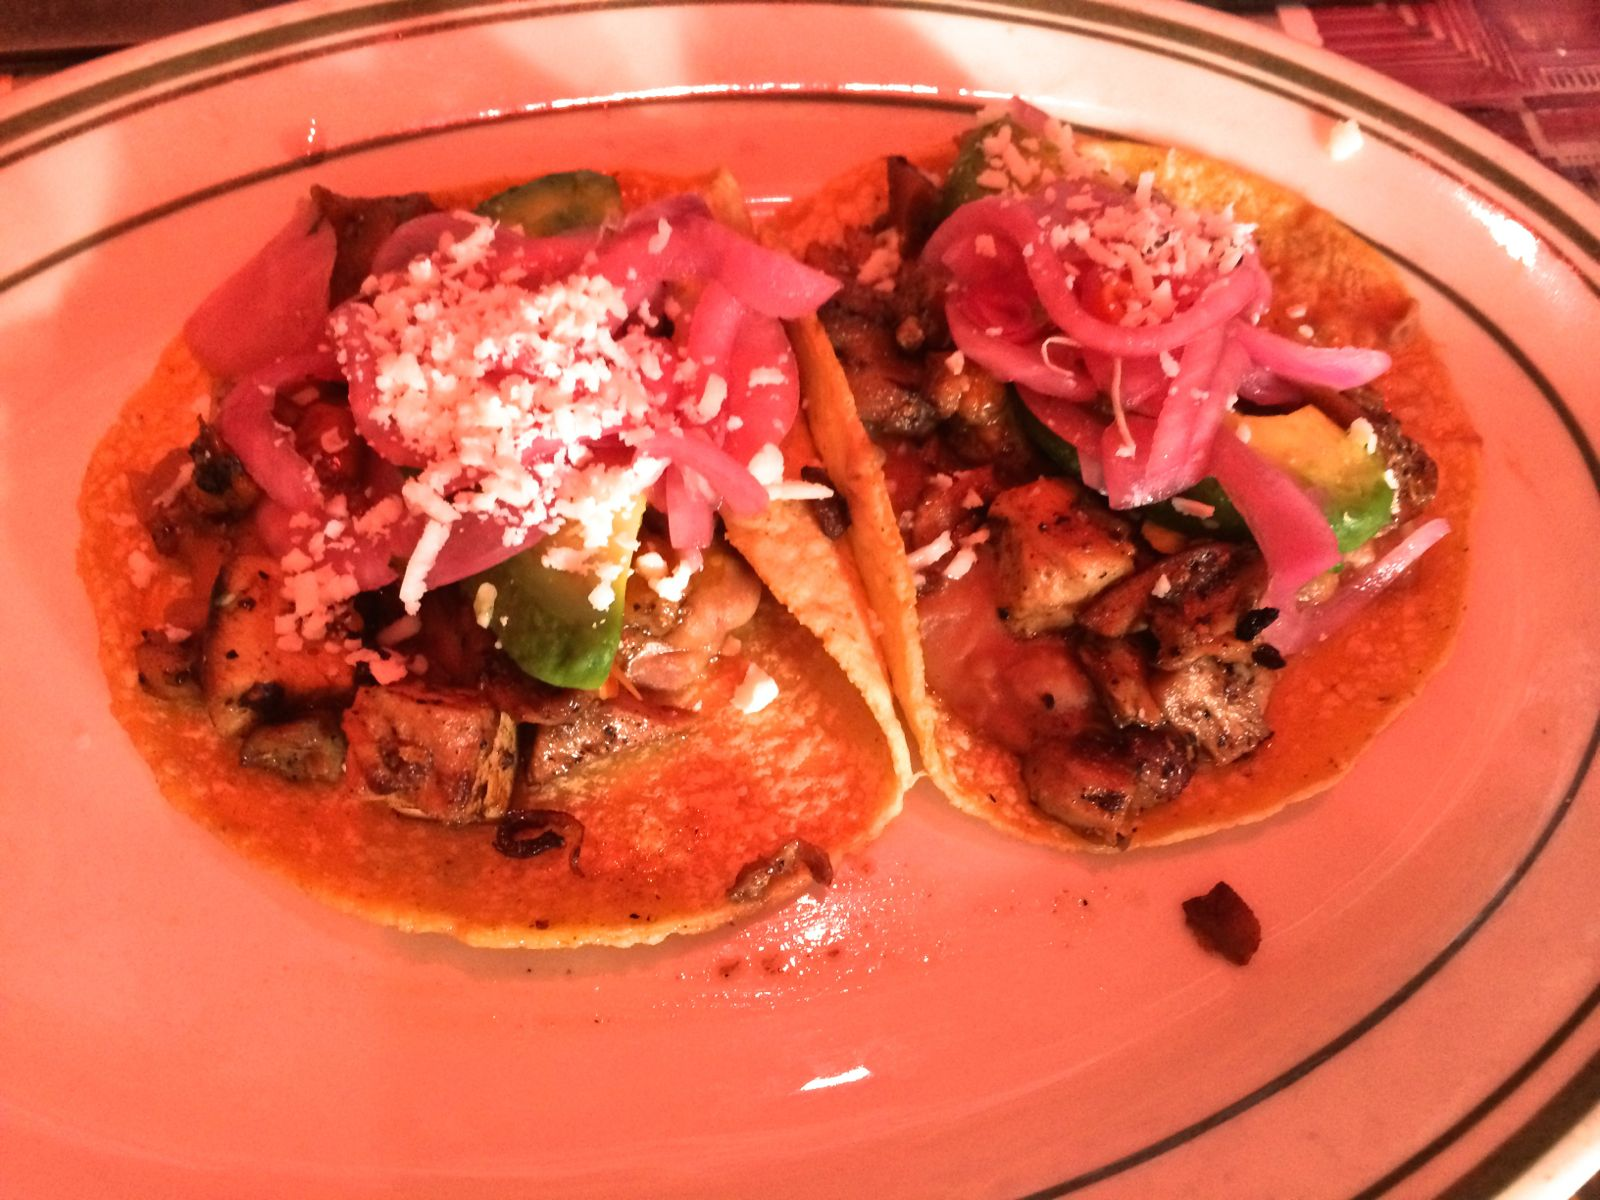 Chicken Tacos at Pink Taco